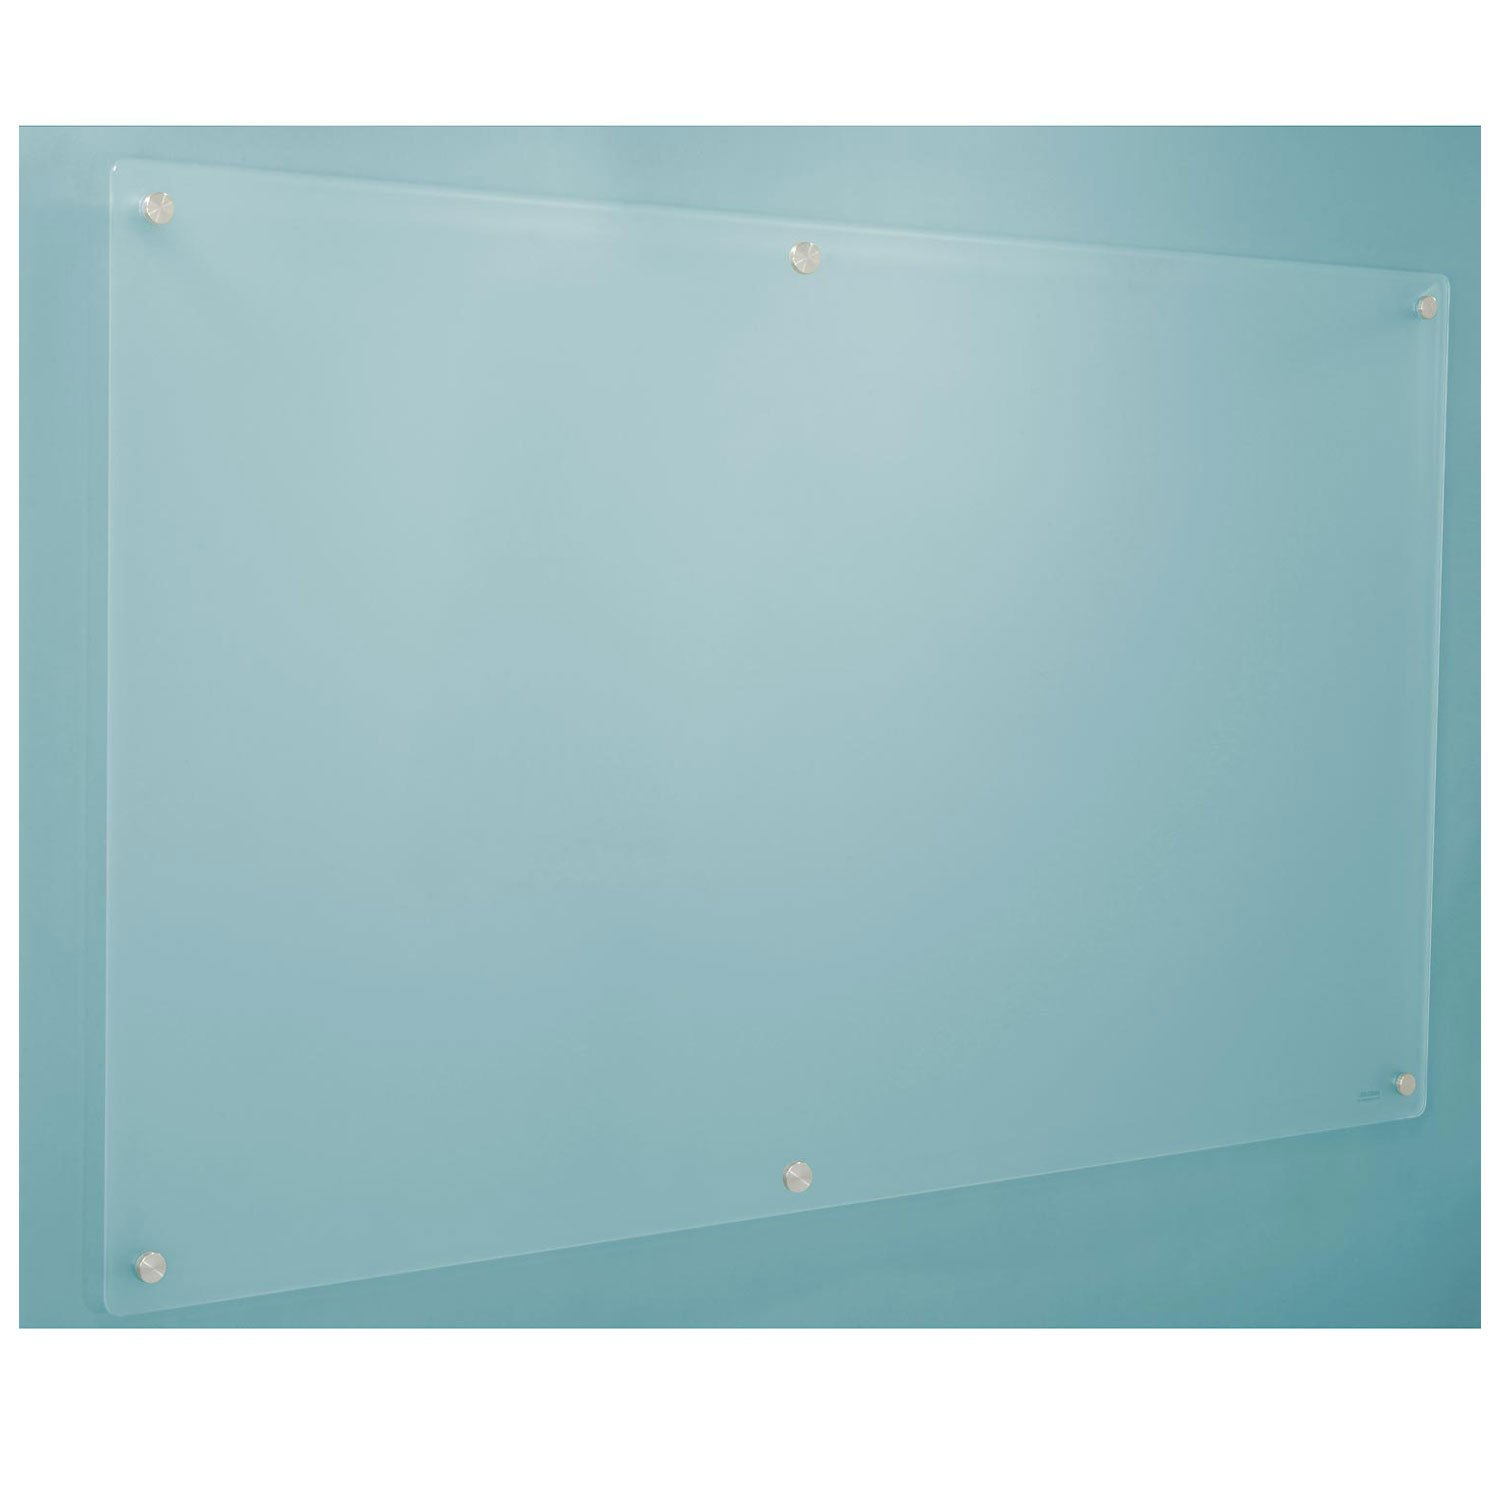 Dry Erase Board - Frosted Glass, 72 x 48 by Industrial Supplies